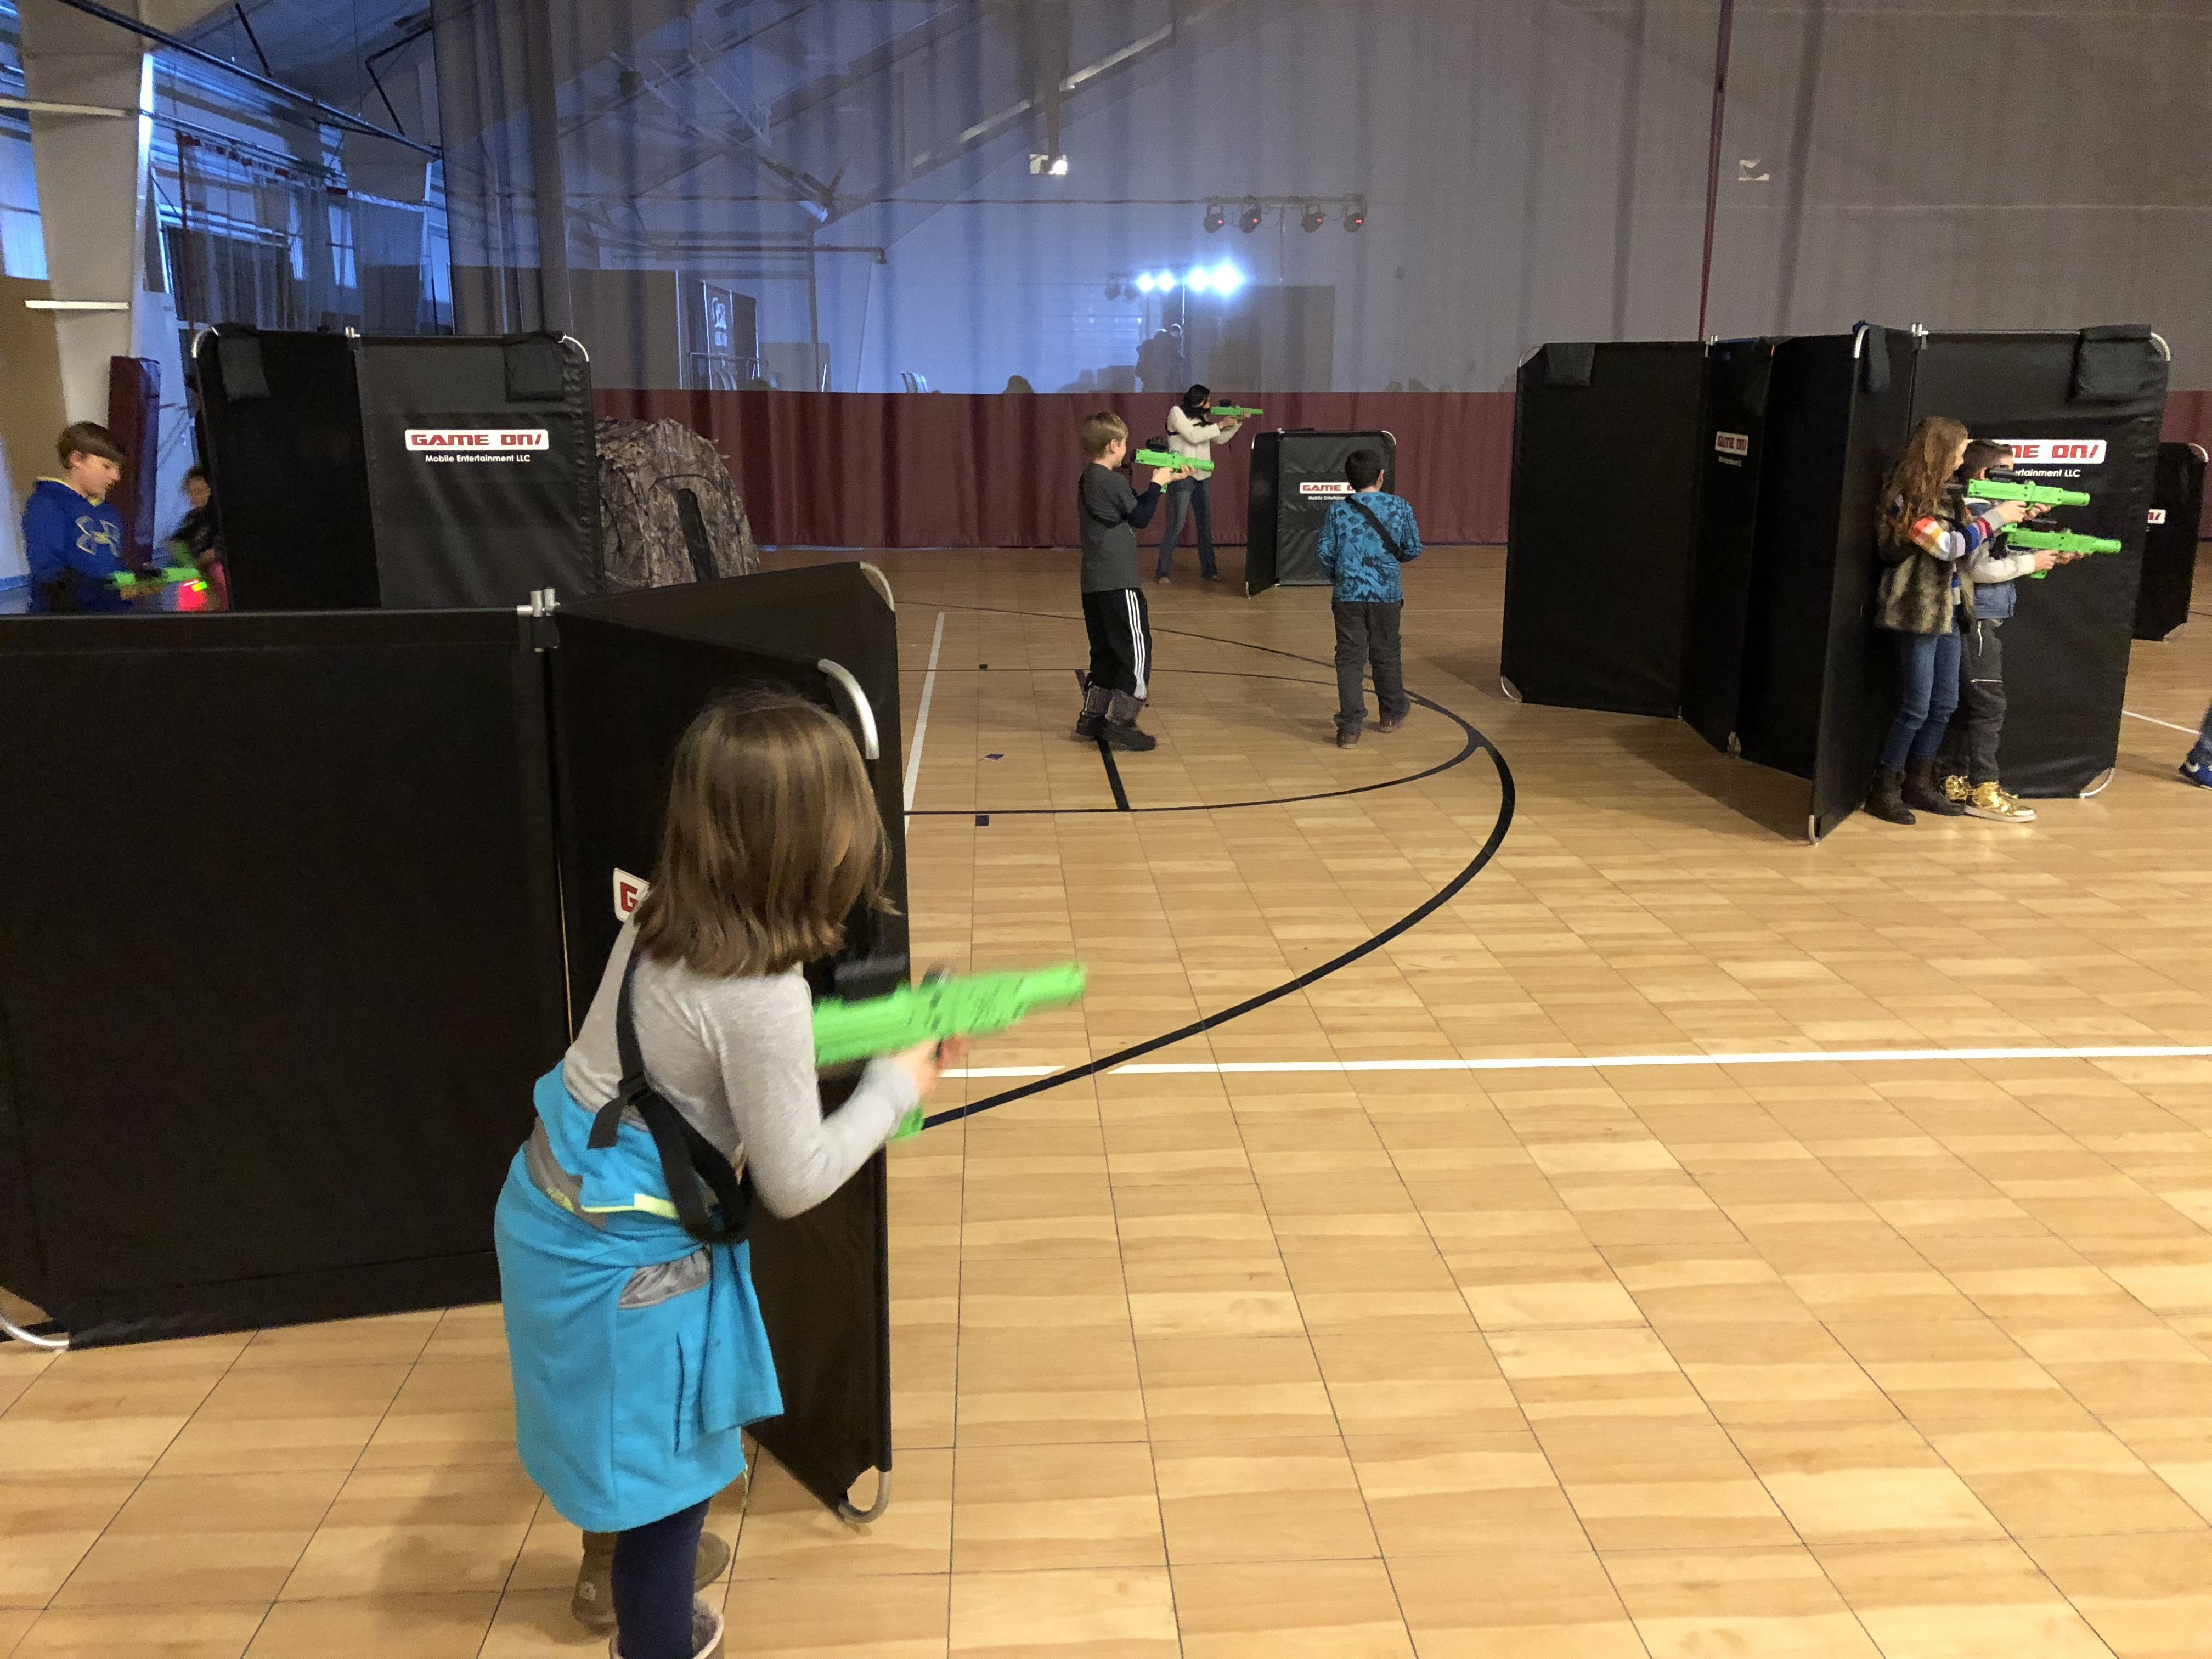 We Just Launched Our New Laser Tag Barriers It Gives You A Whole New Experience With Tactical Laser Tag Book Laser Tag Wit Laser Tag Tri Cities Event Rental